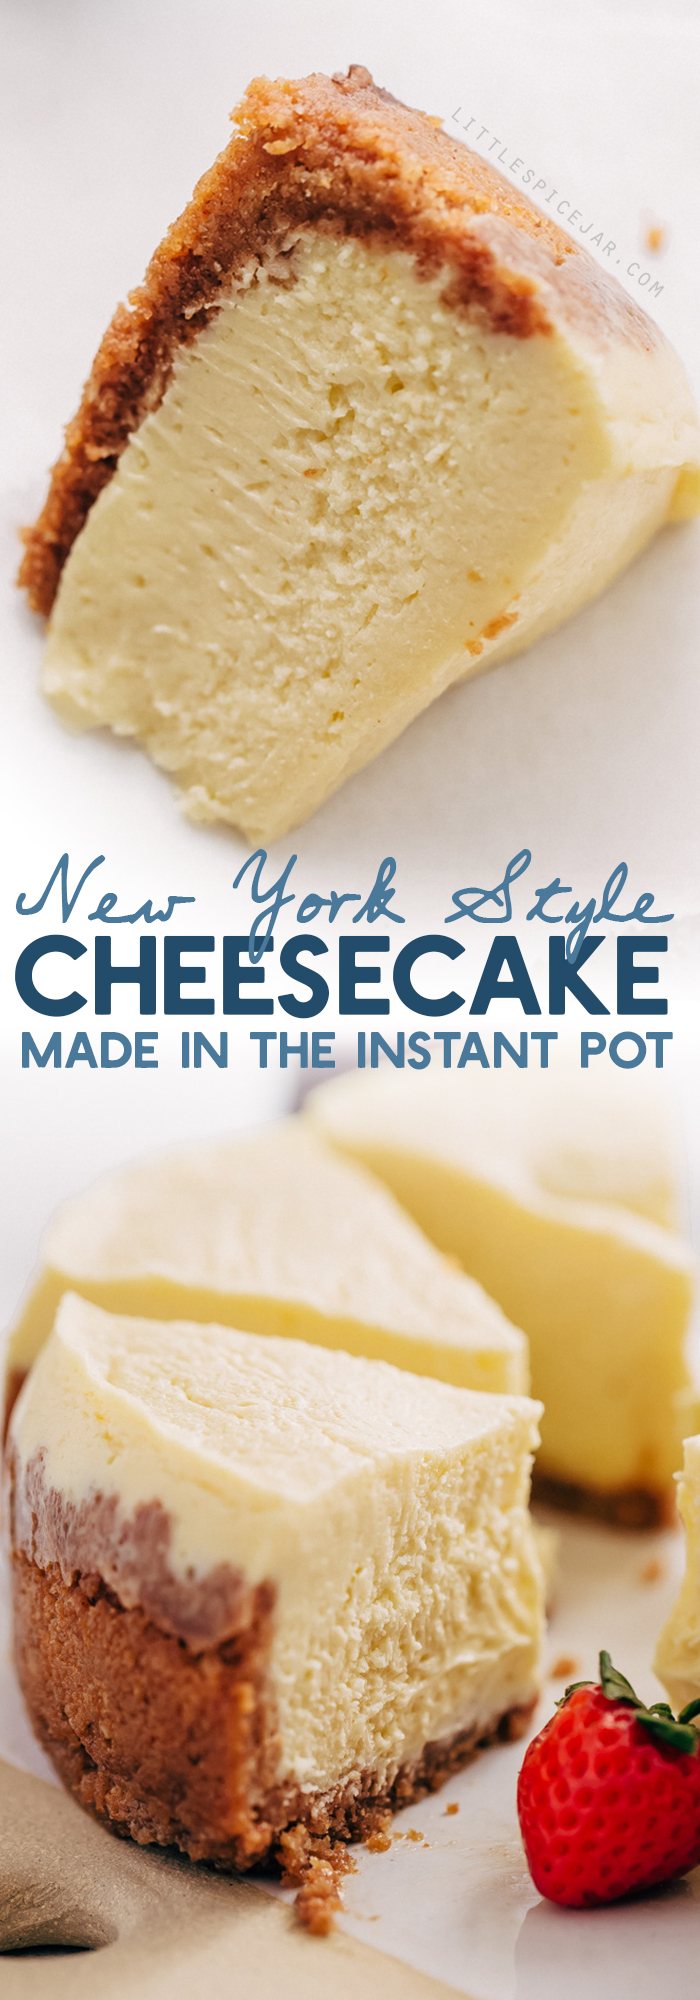 New York-Style Instant Pot Cheesecake - Learn how to make a traditional cheesecake right in your pressure cooker! #instantpot #instantpotdessert #instantpotcheesecake #cheesecake #pressurecookercheesecake | Littlespicejar.com